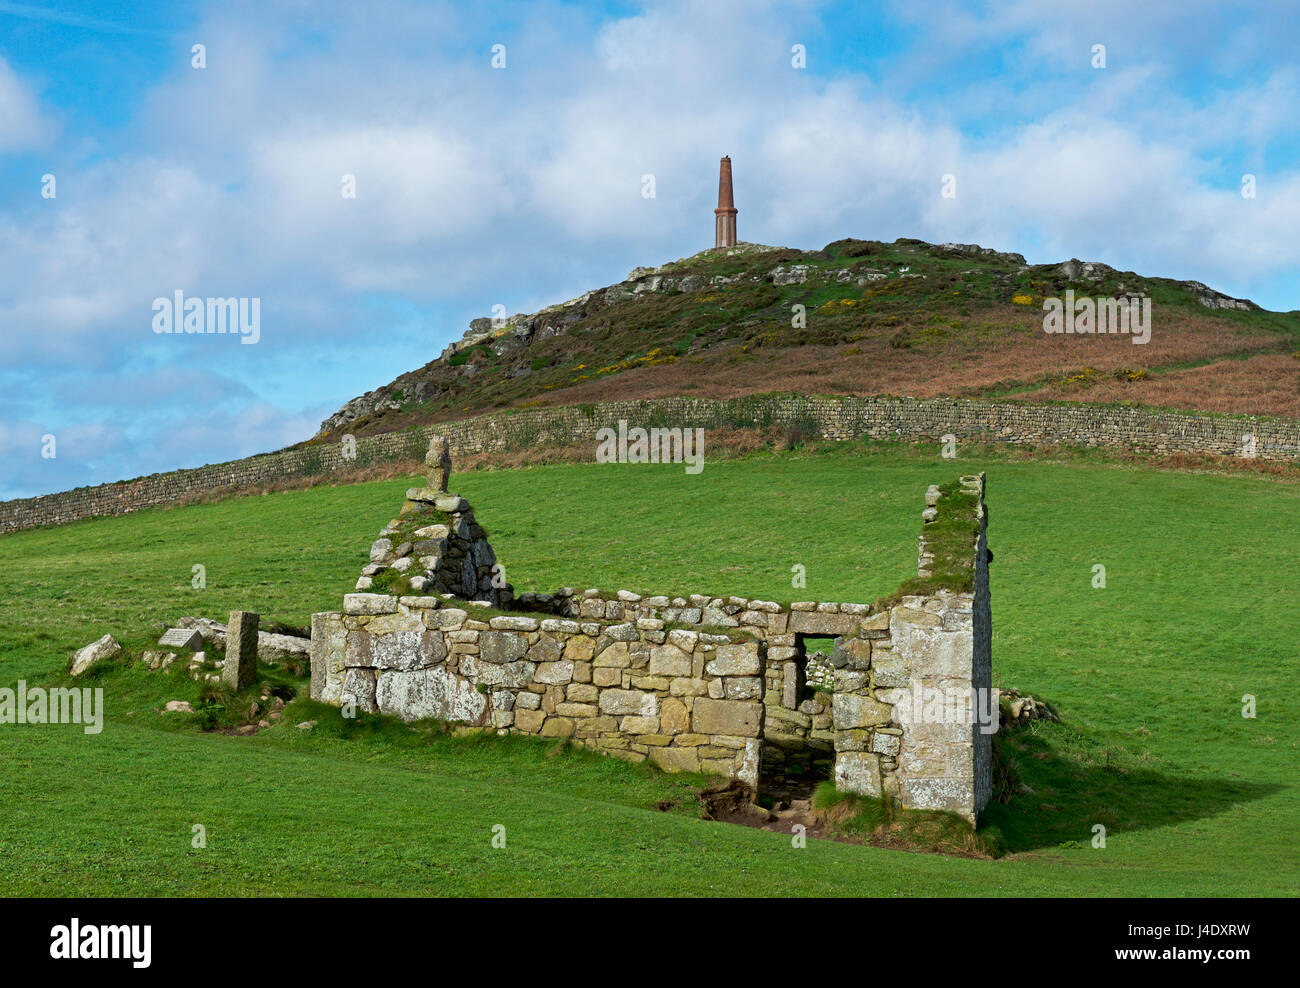 The ruins of St Helen's Oratory, a tiny chapel at Cape Cornwall, Penwith, Cornwall, England - Stock Image